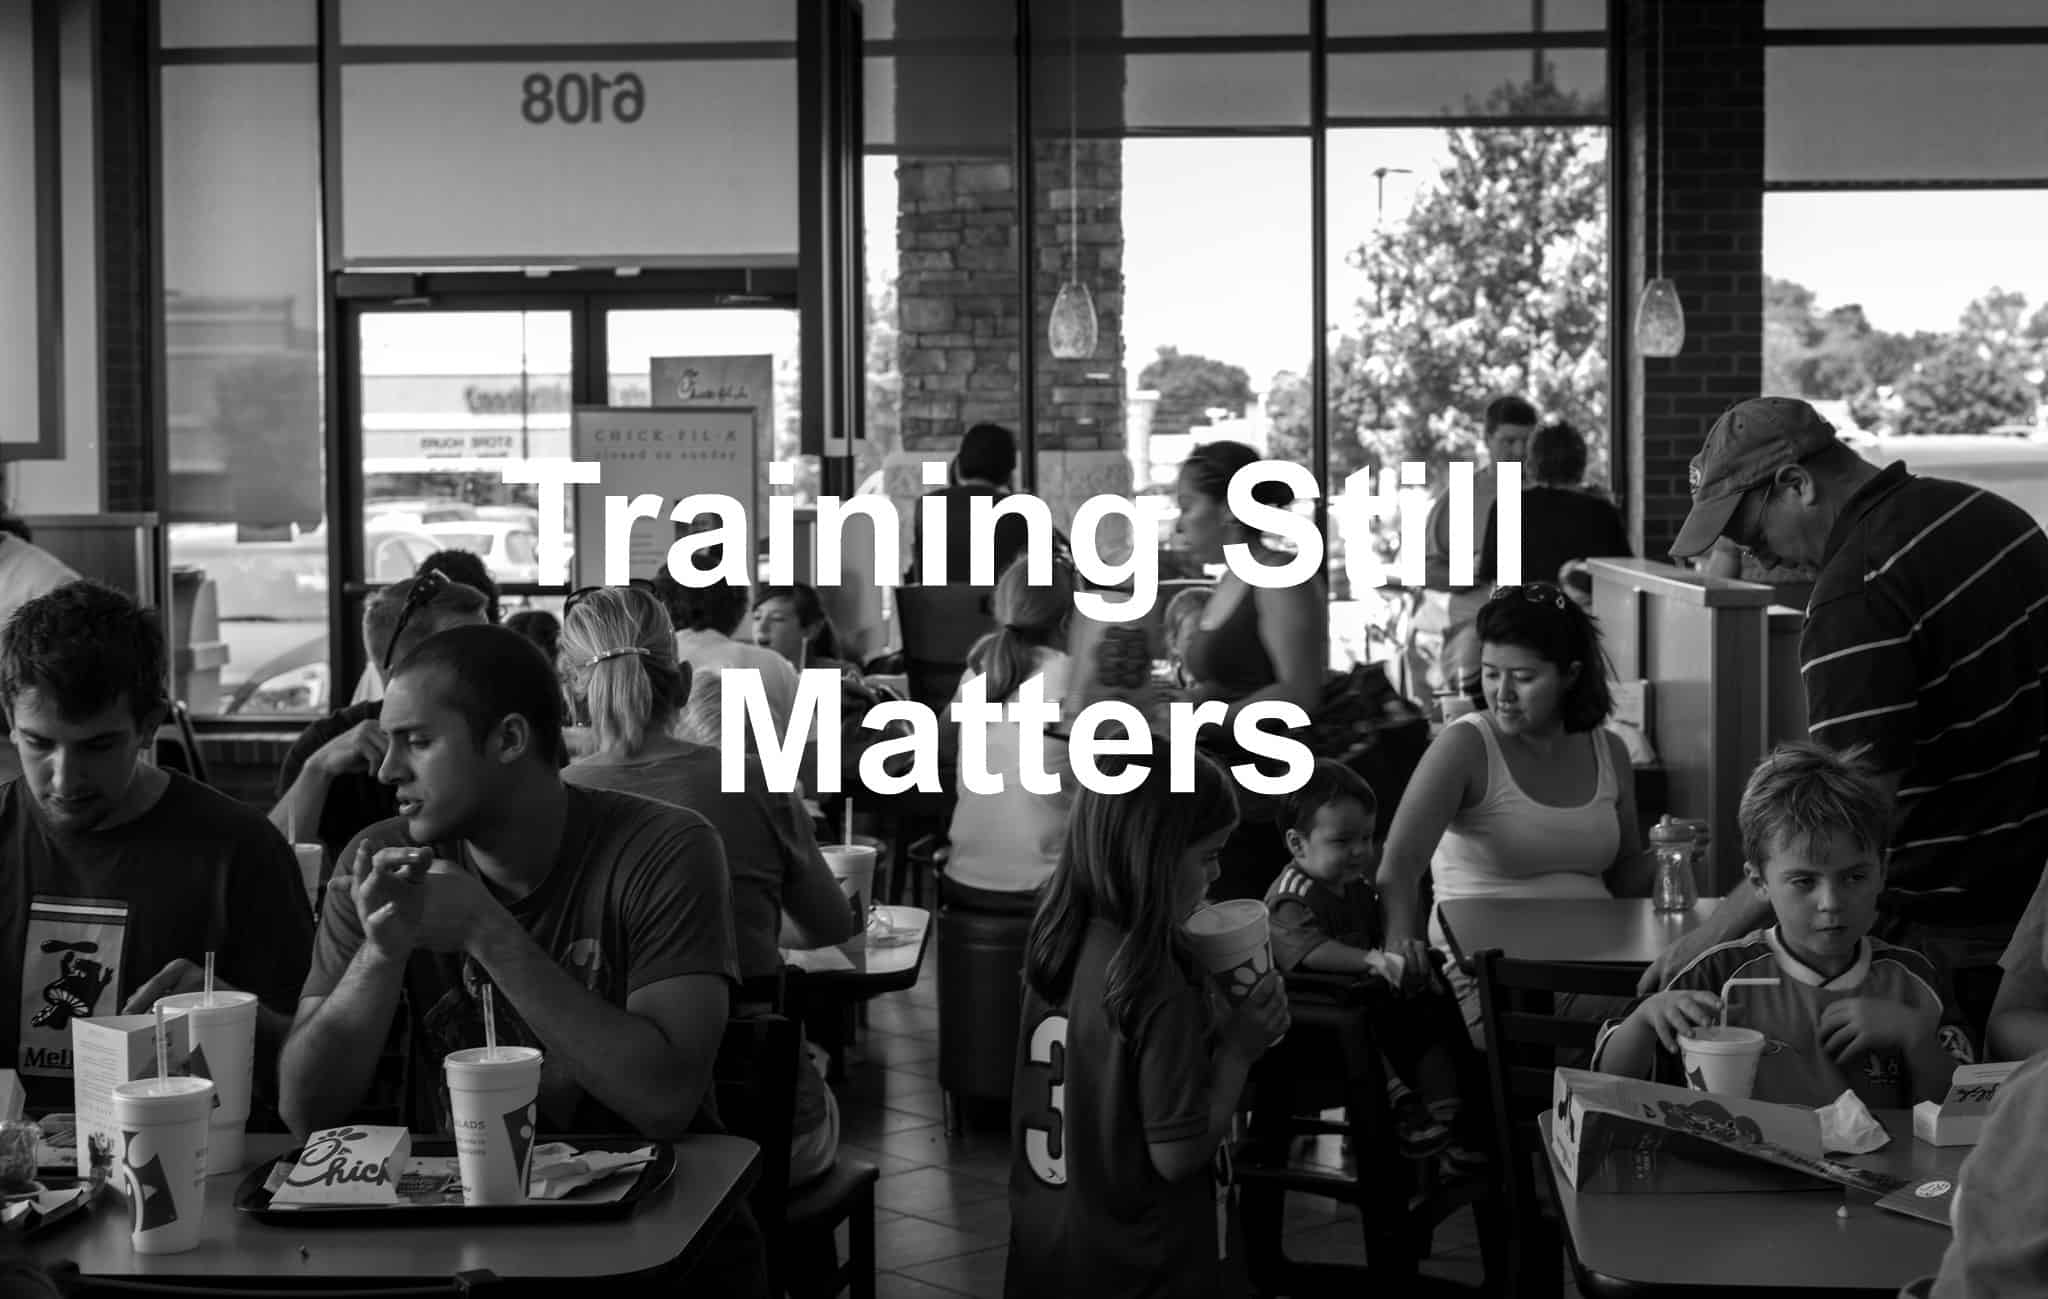 Does training still matter? Chick-Fil-A says yes!